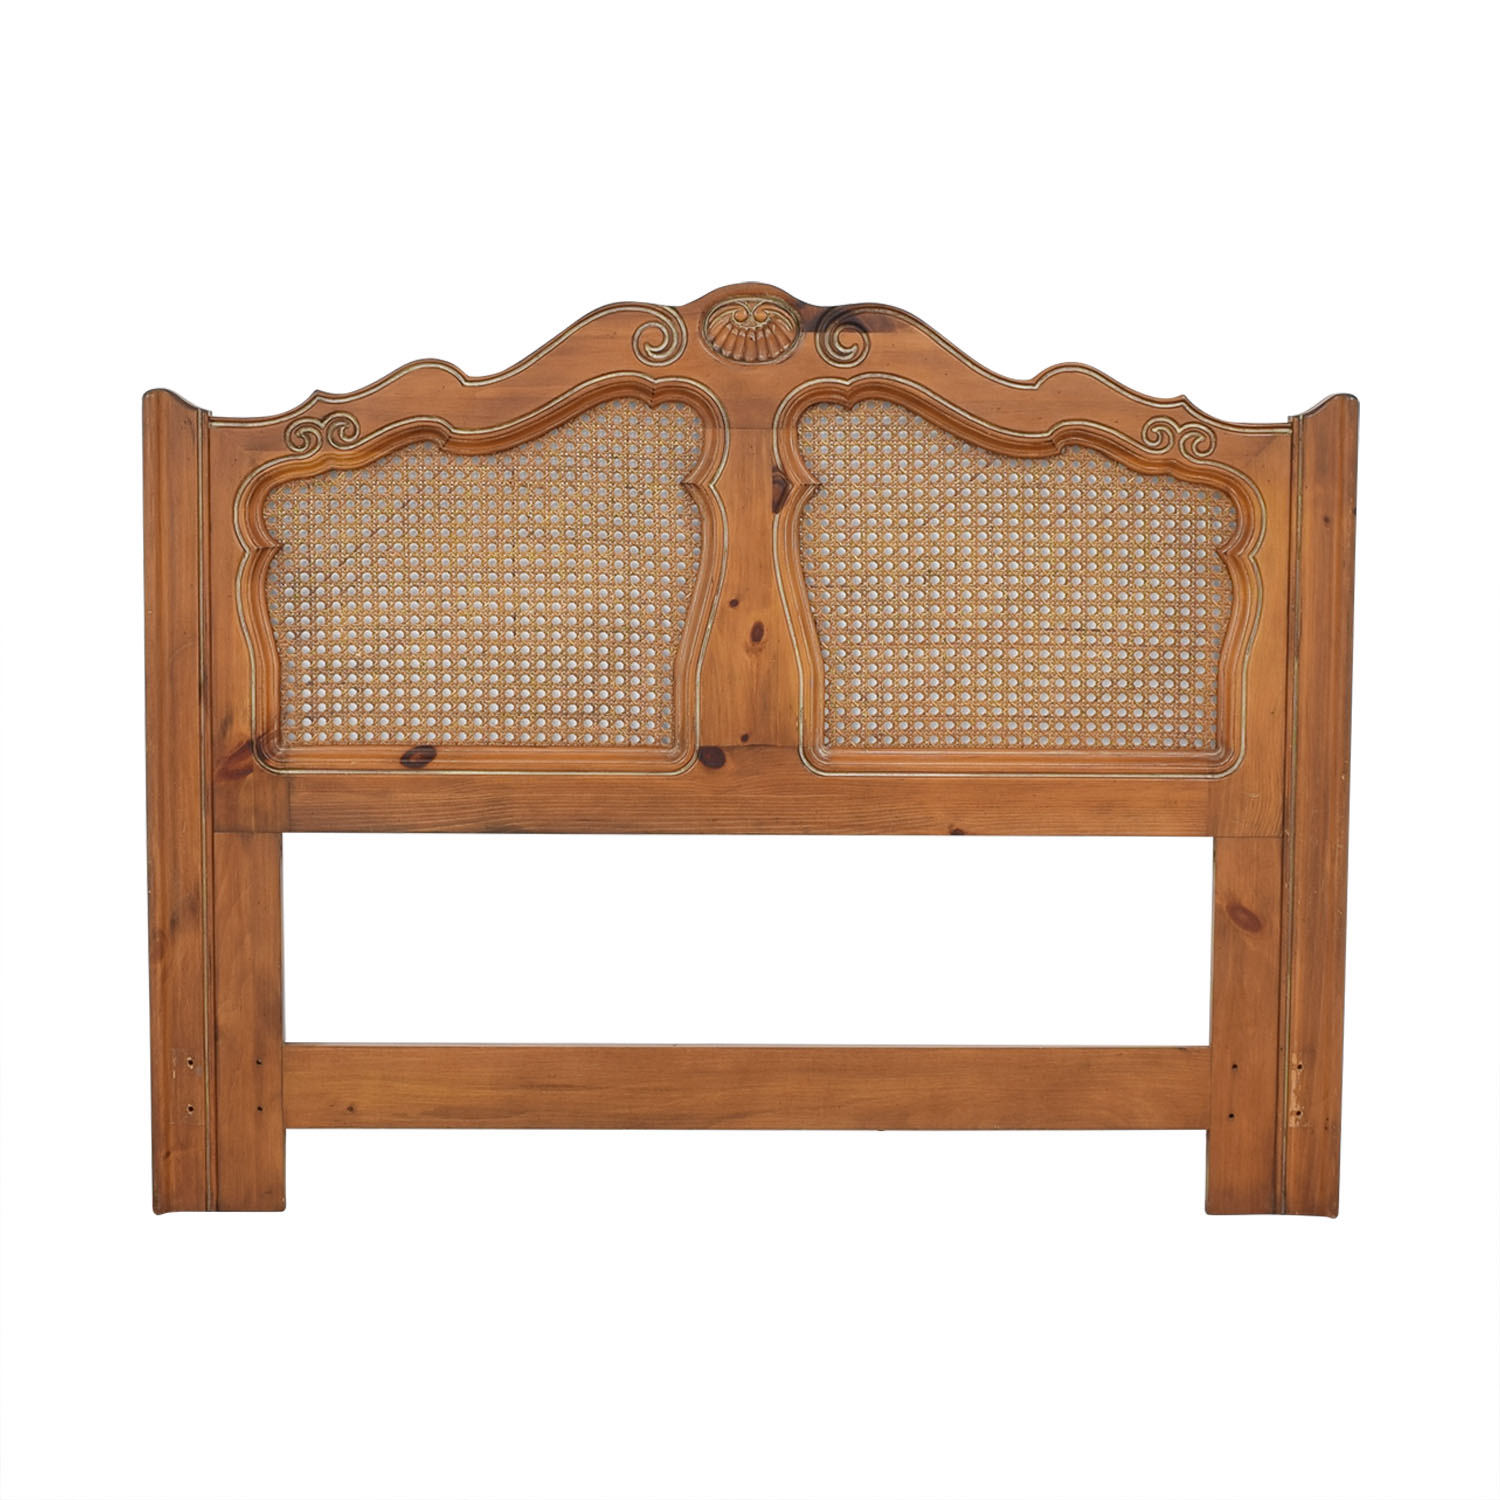 Ethan Allen Ethan Allen Queen Headboard for sale